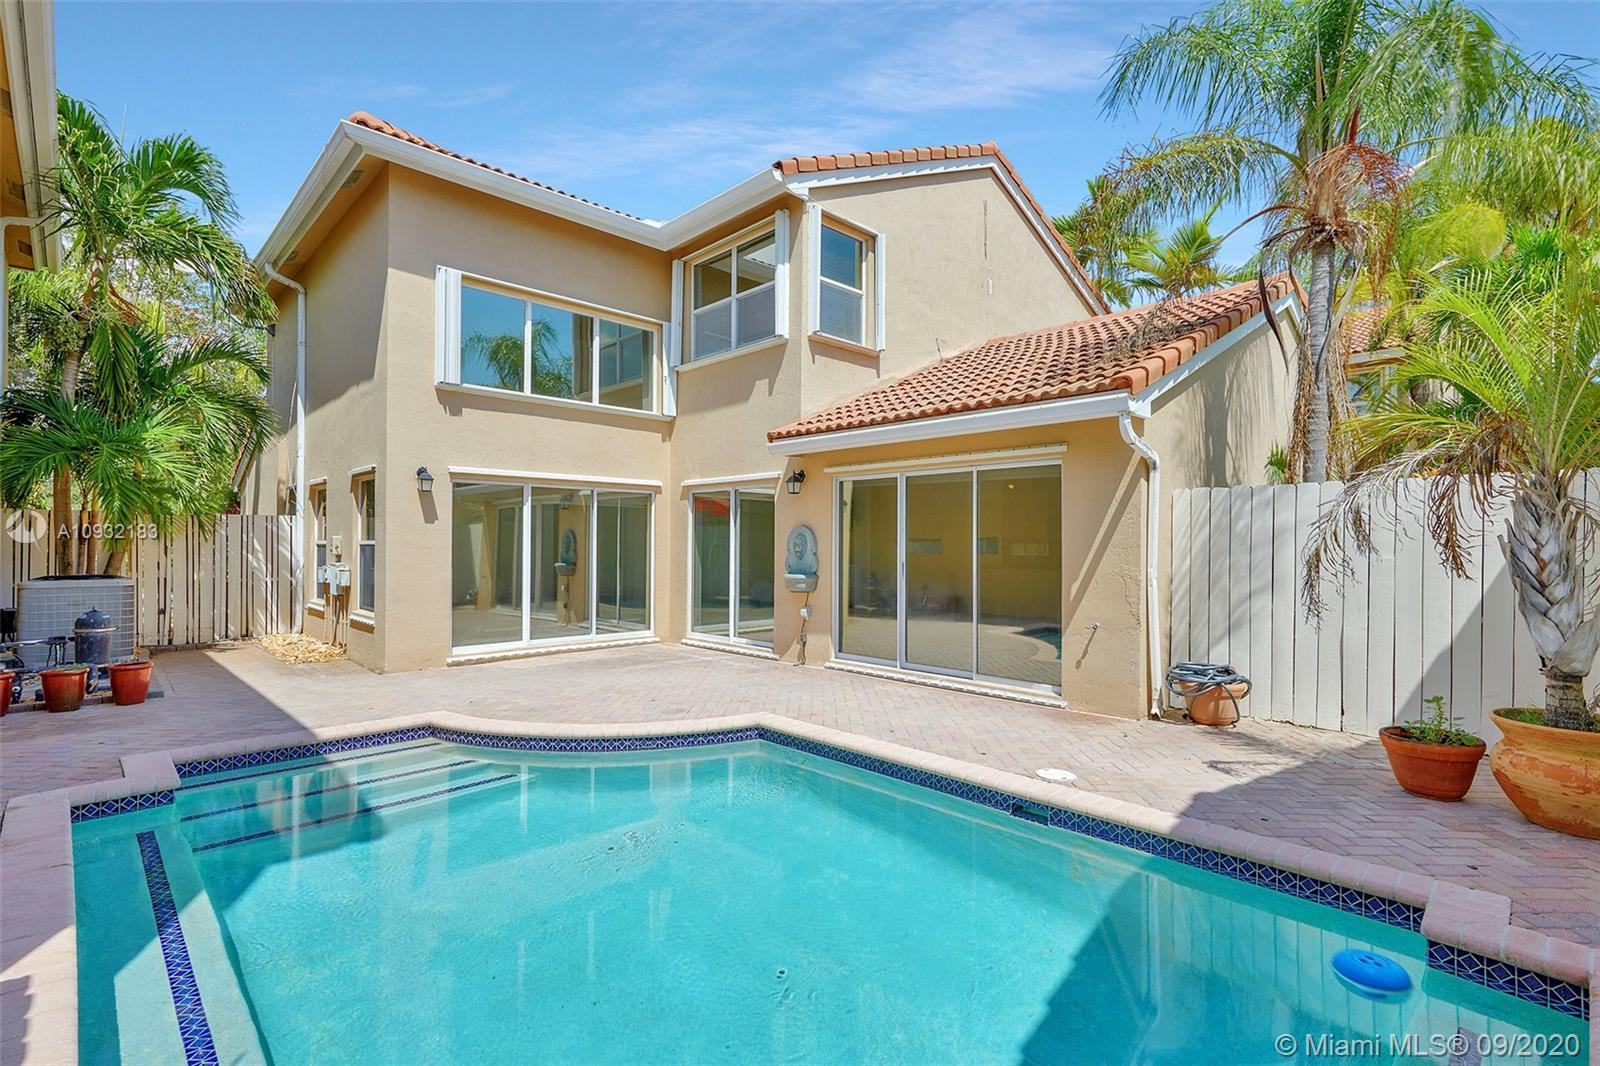 Fantastic, two story, 4/3 pool home with 1 bed/full bath downstairs in 24 hour guard gated community